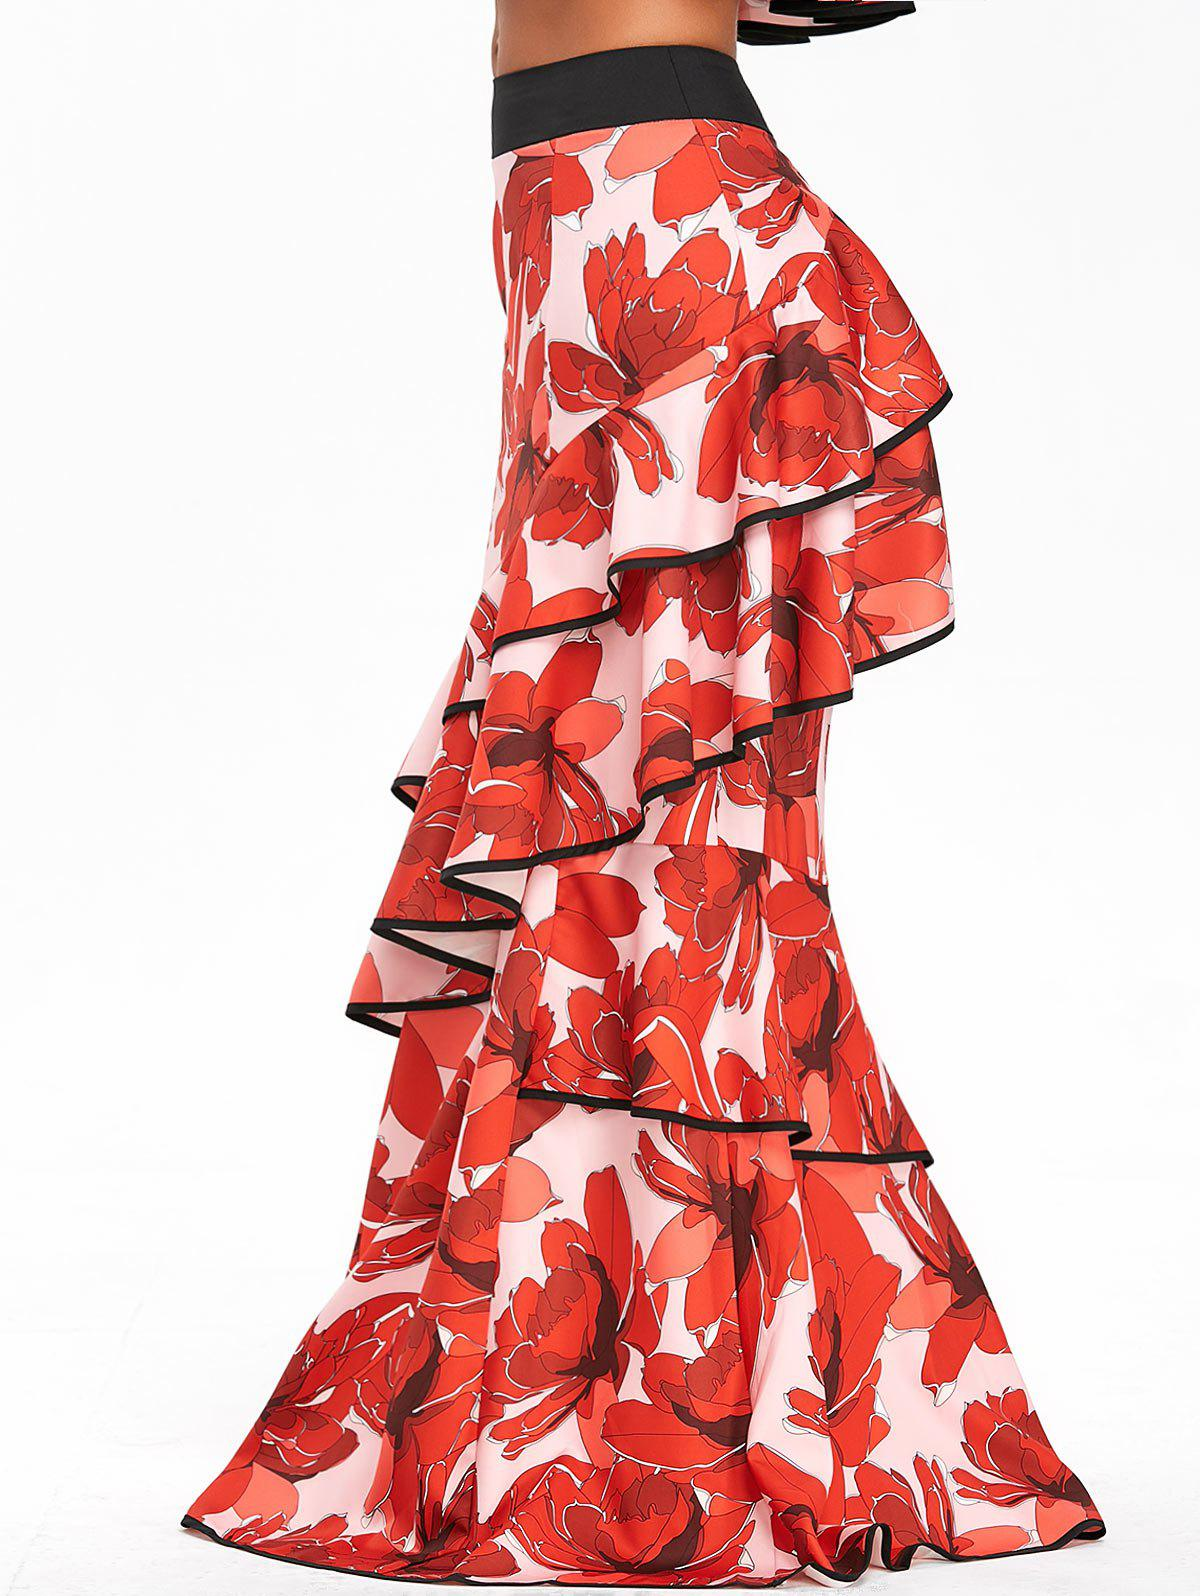 Ruffled High Waisted Floral Print Maxi Skirt - RED L